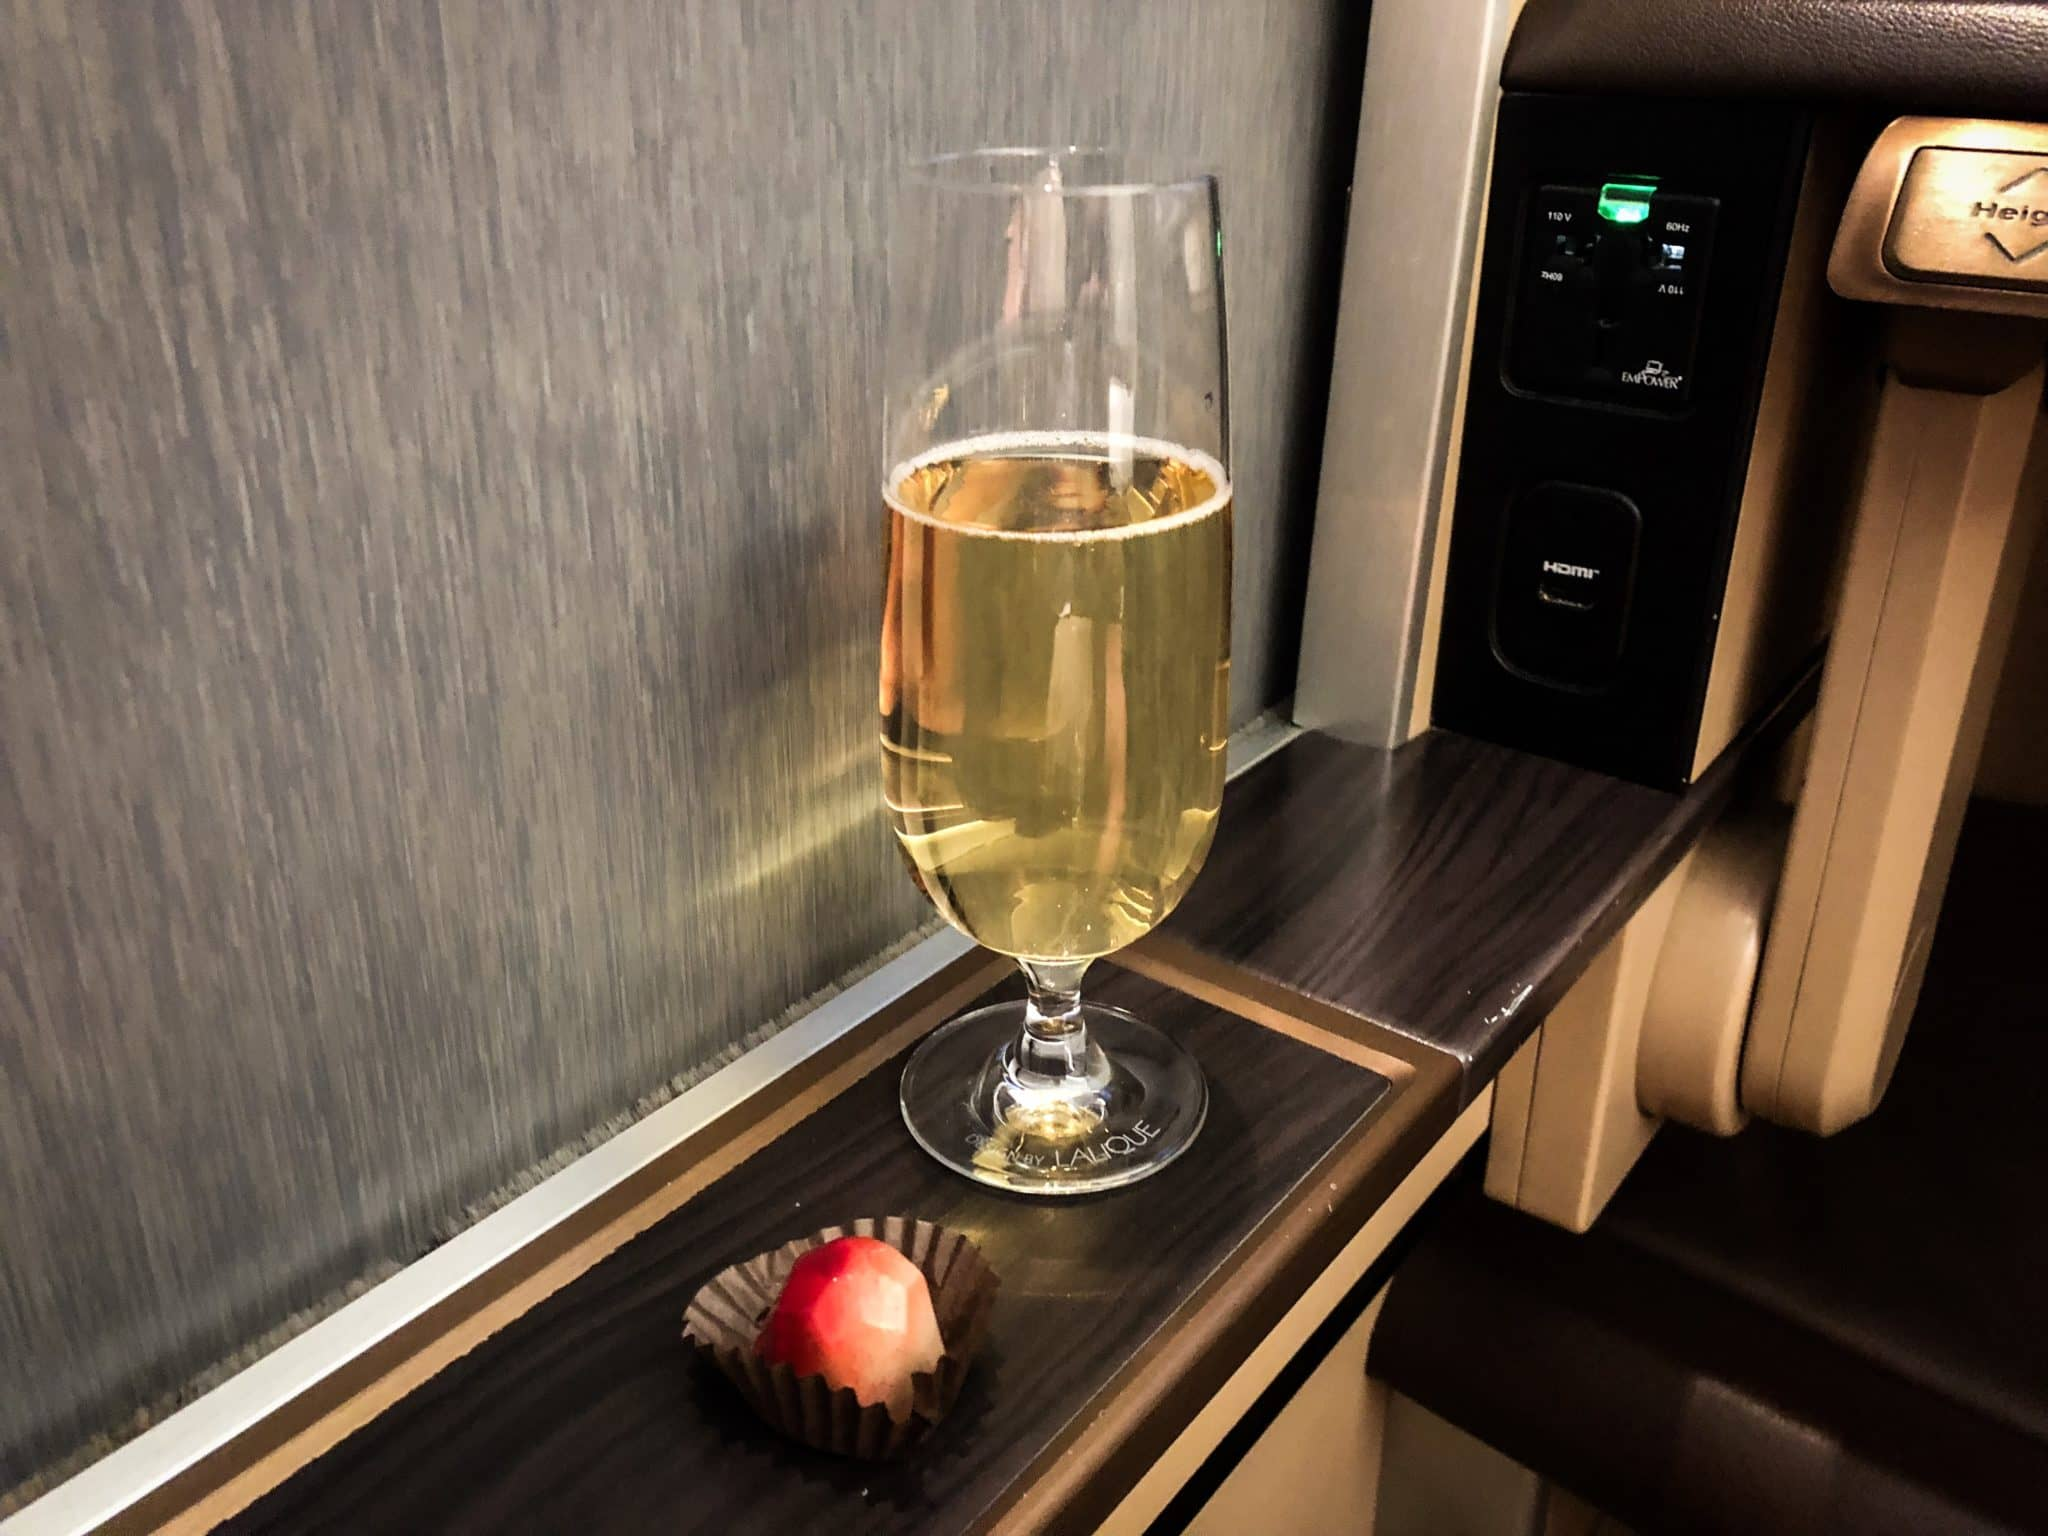 Singapore Airlines First Class Boeing 777-300 Champagner mit Mint